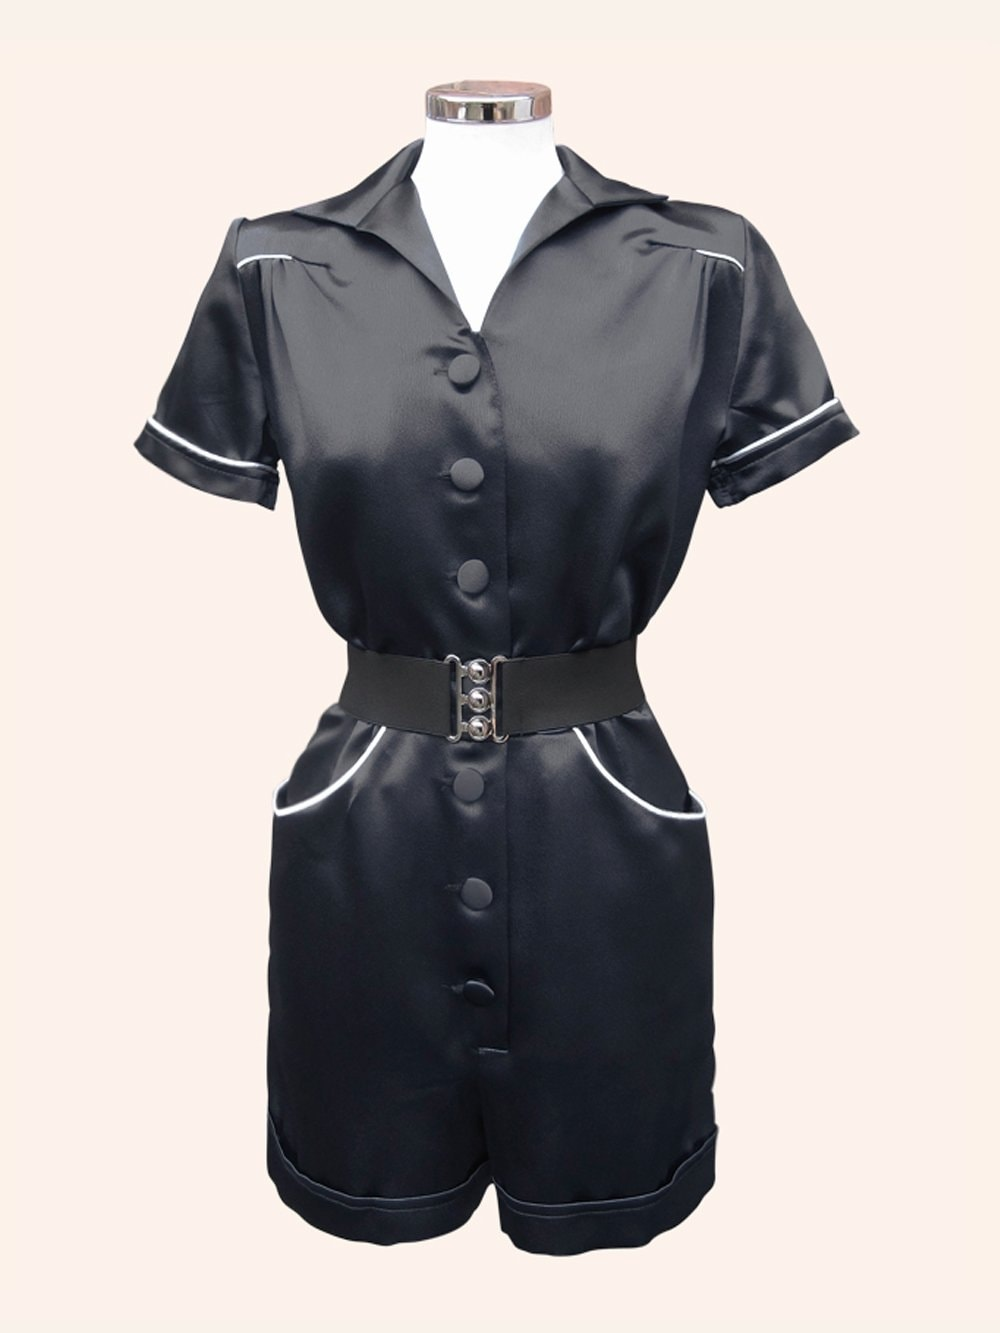 b31e8eac789 Playsuit Crepe Black Satin from Vivien of Holloway